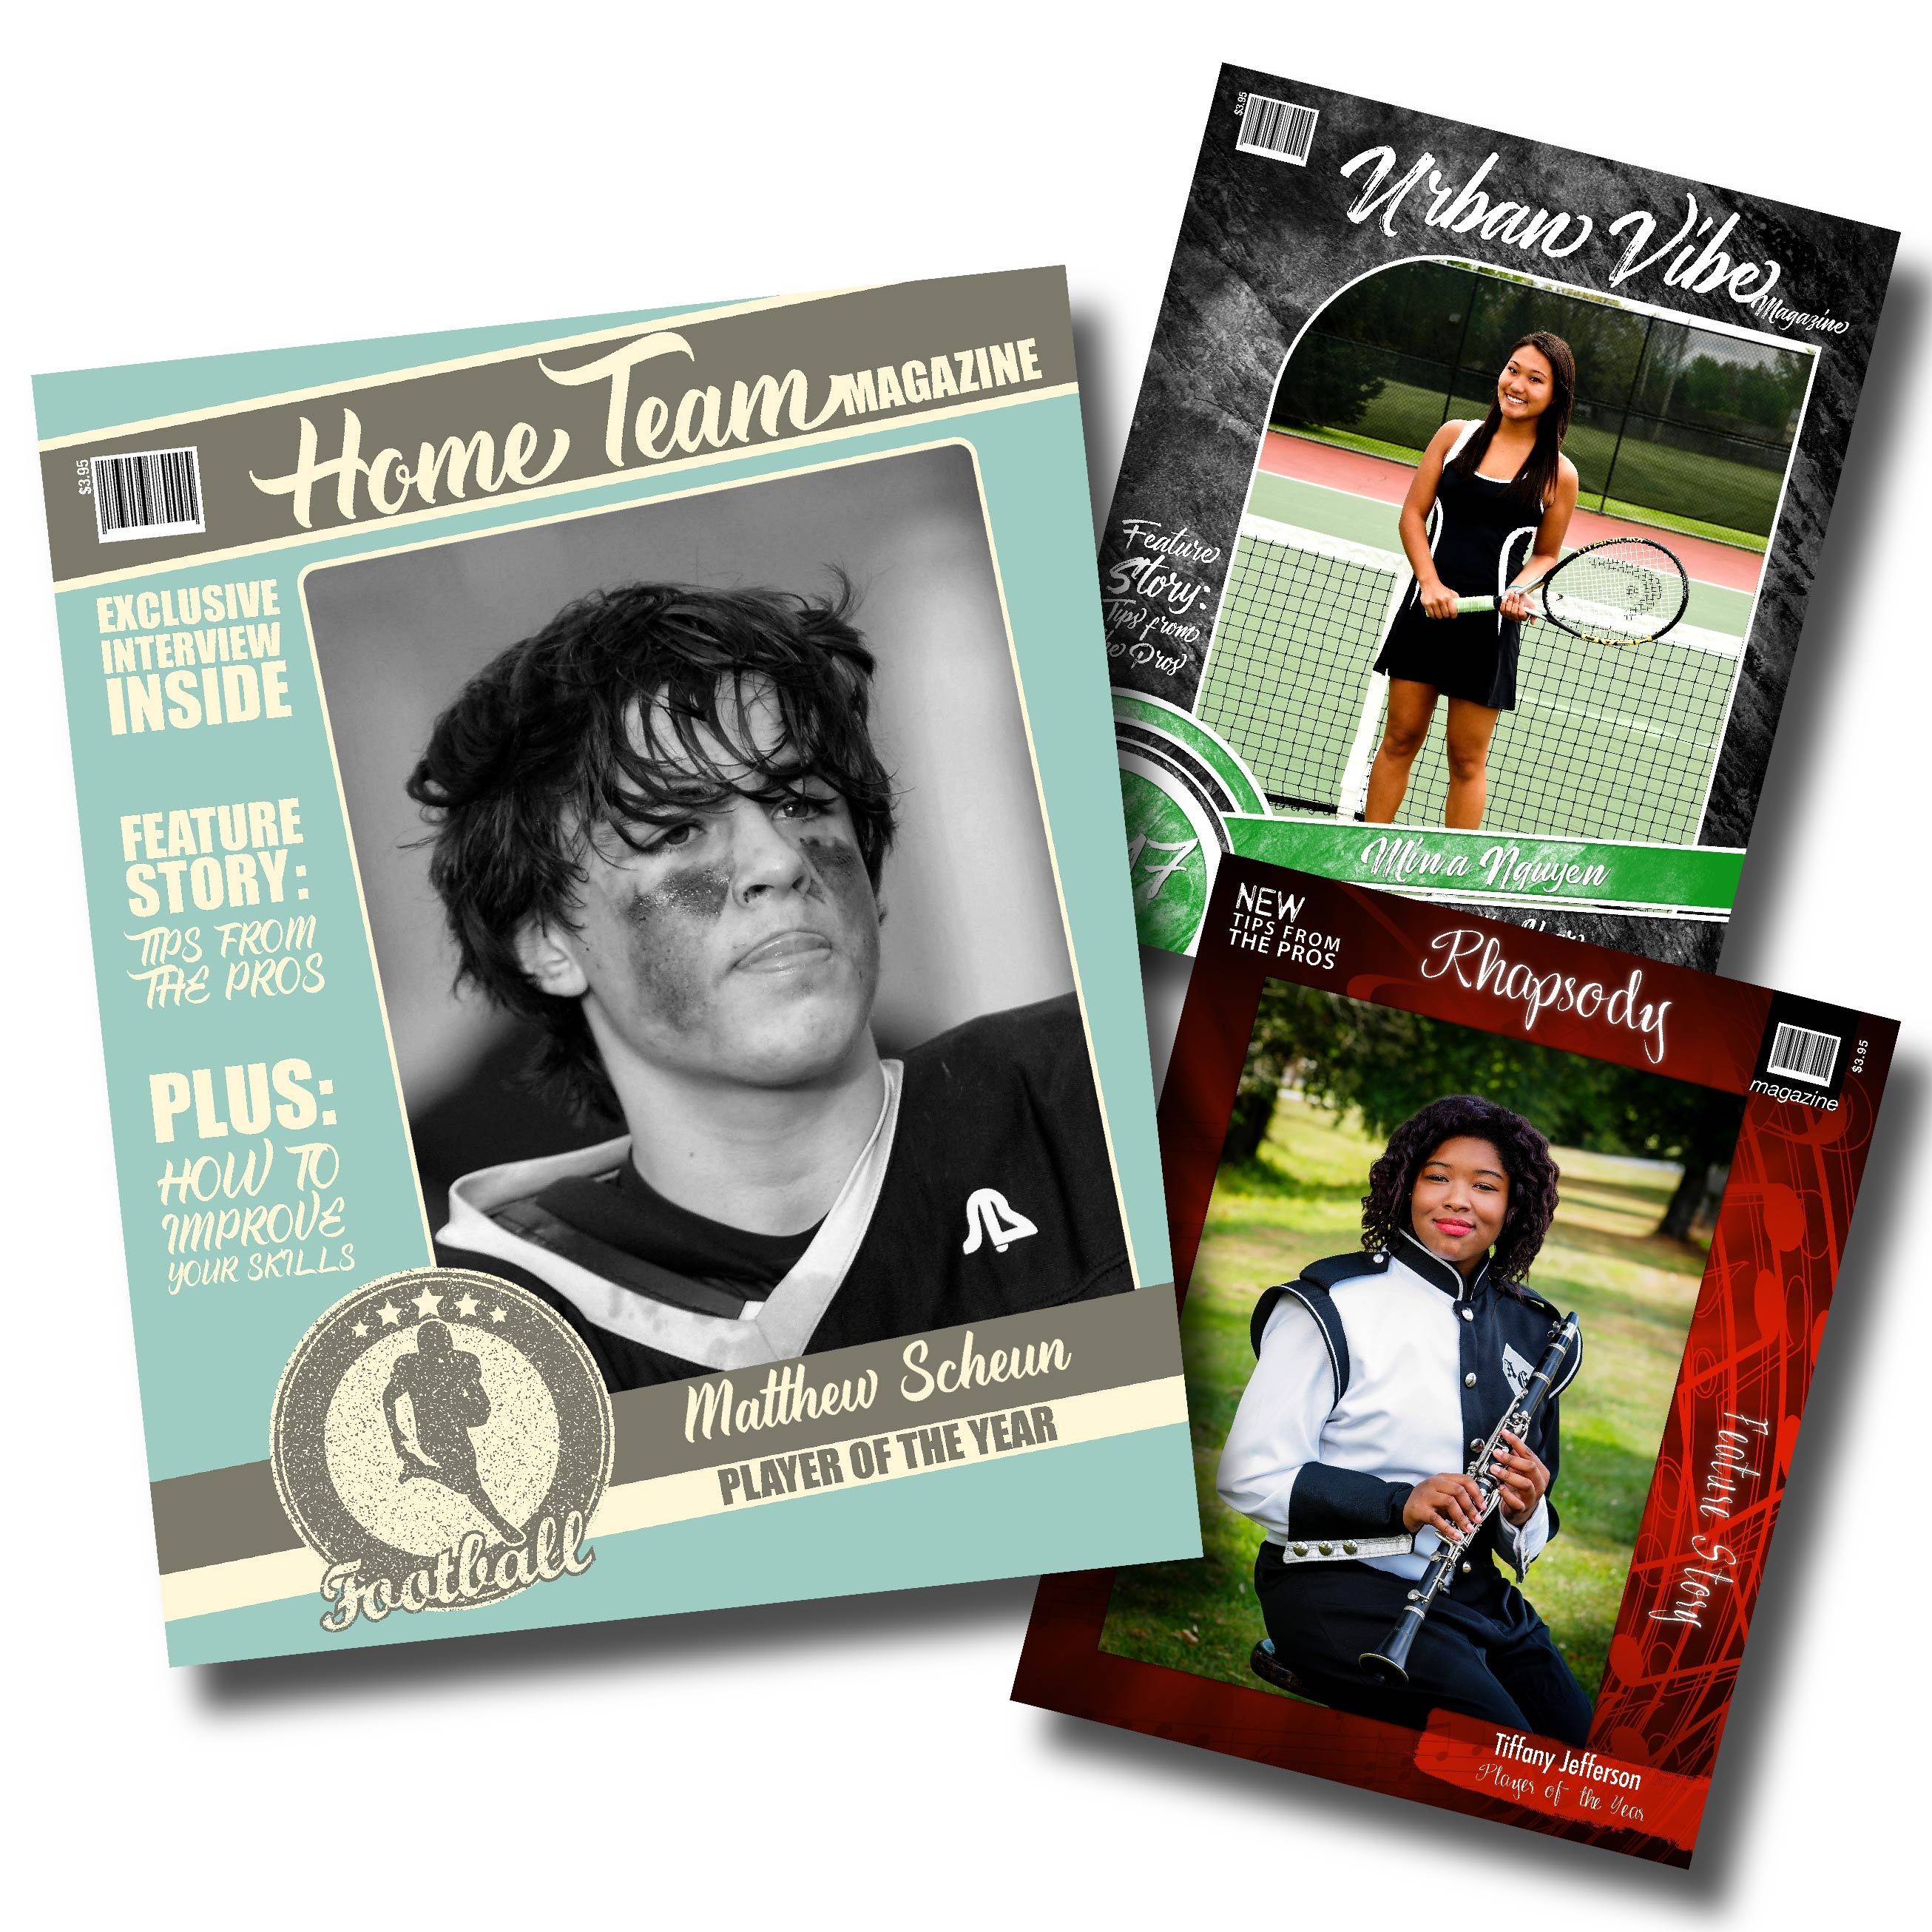 3 photographic print Magazine Covers in Urban Vibe, Home Team Football & Rhapsody